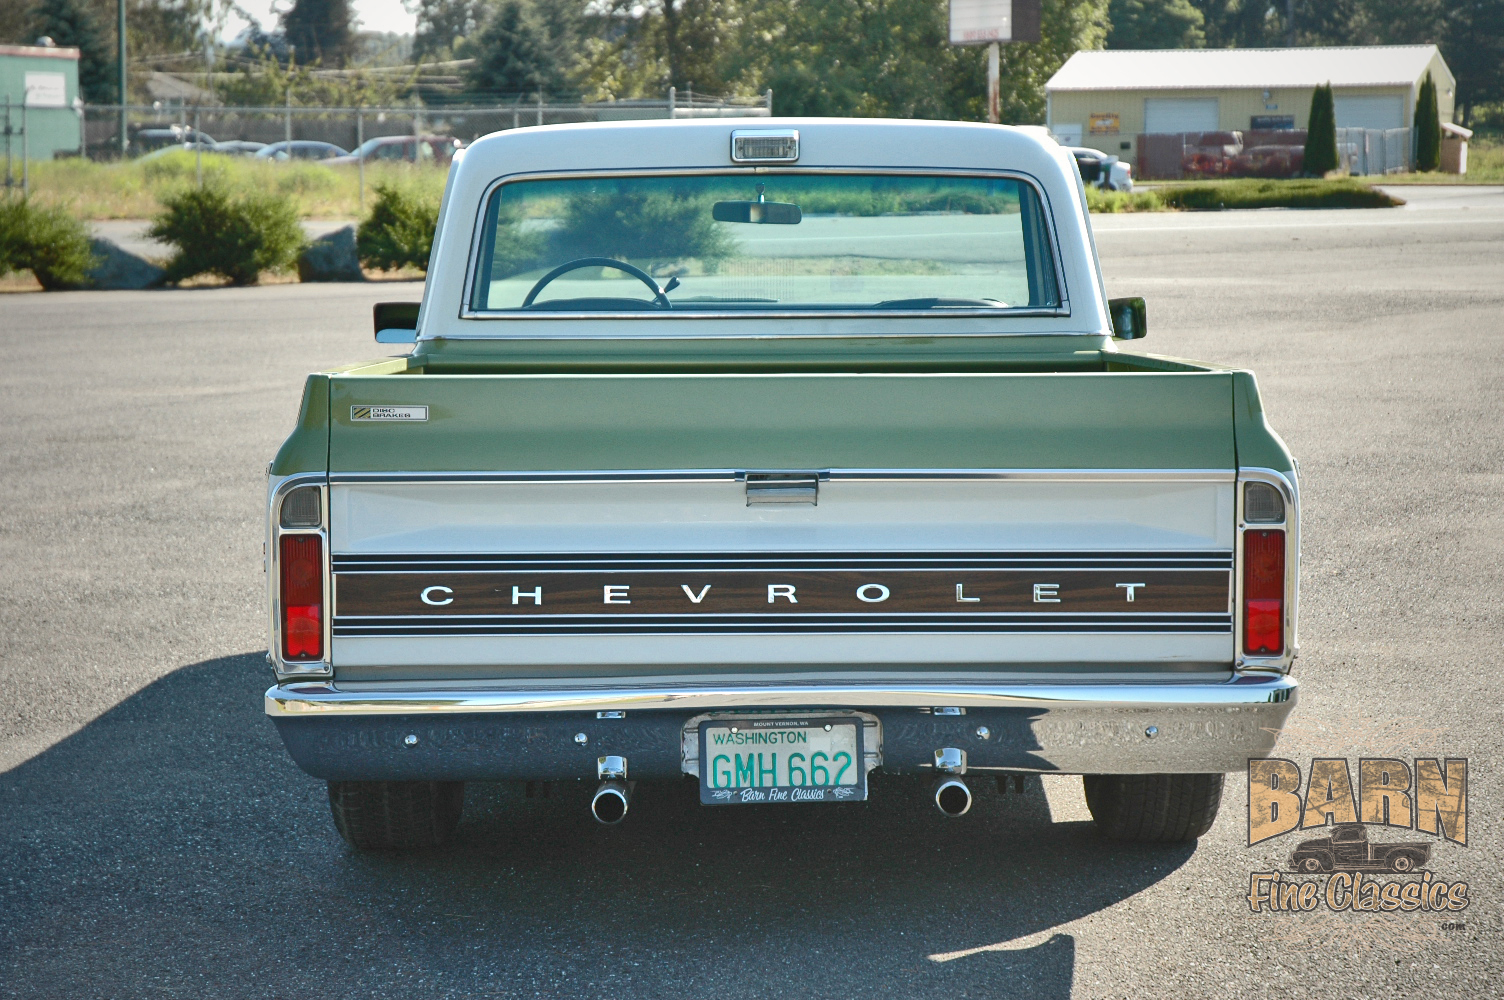 CHEVROLET CHEYENNE green